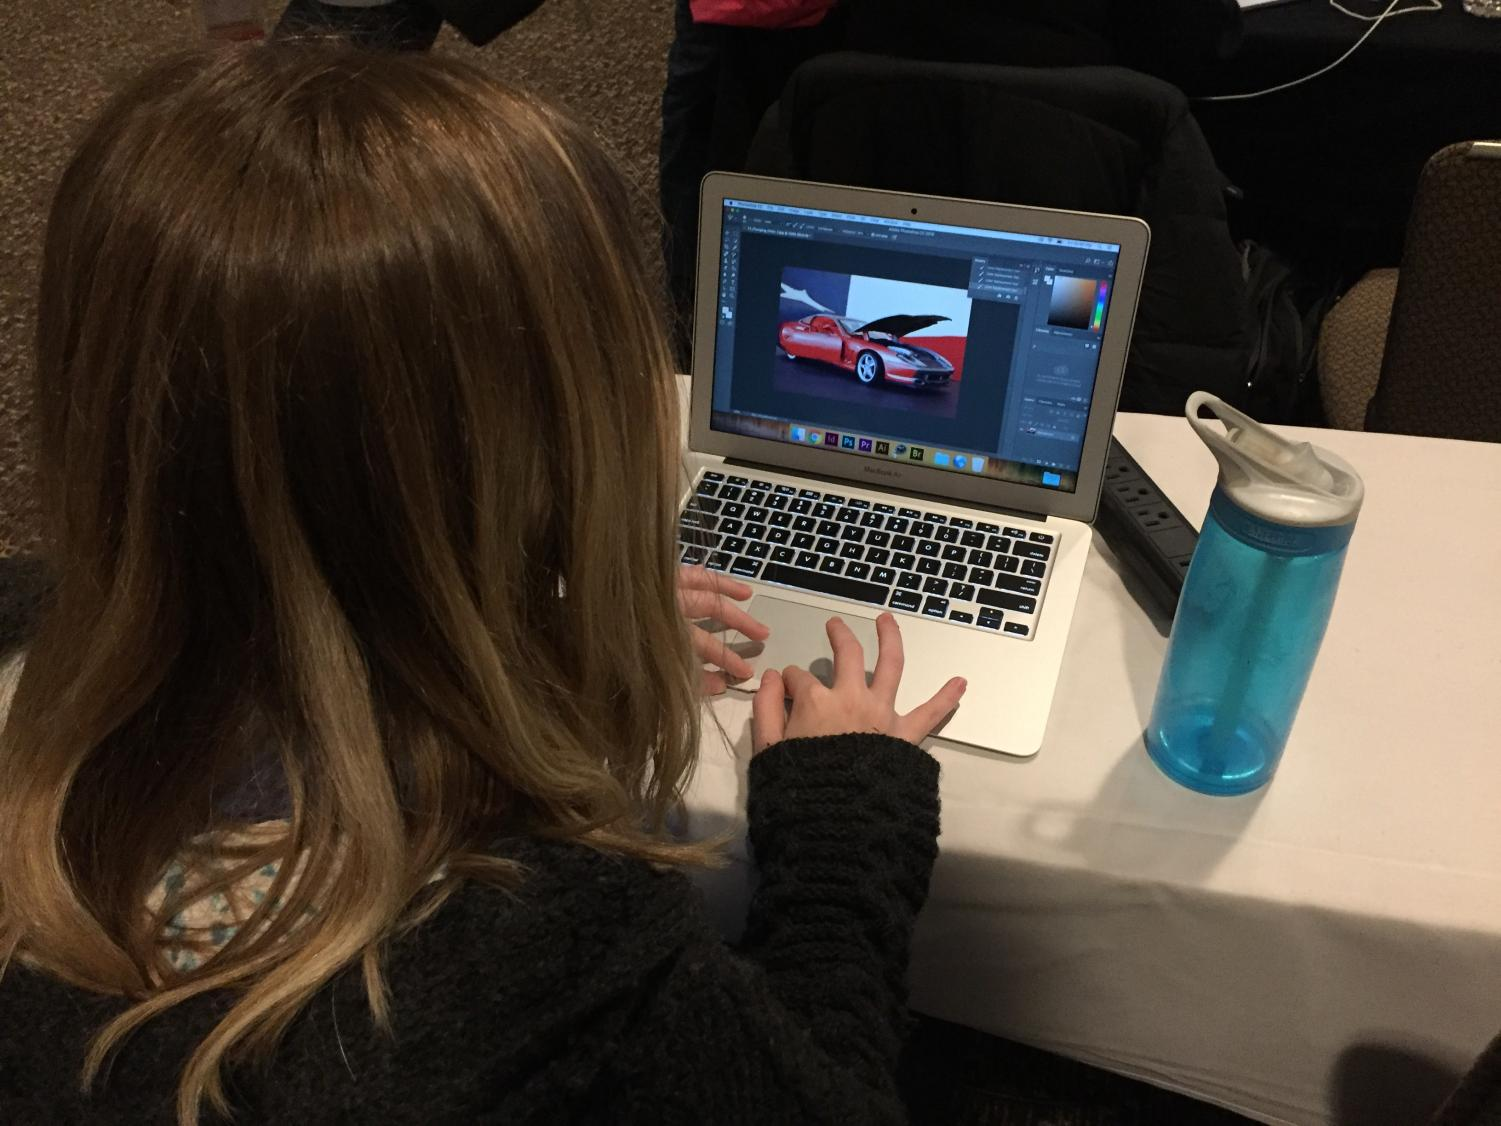 One girl learns to use photoshop and other programs in a computer design course. Girls are showing more interest in STEM fields as a result of classes like the girl's engineering day.